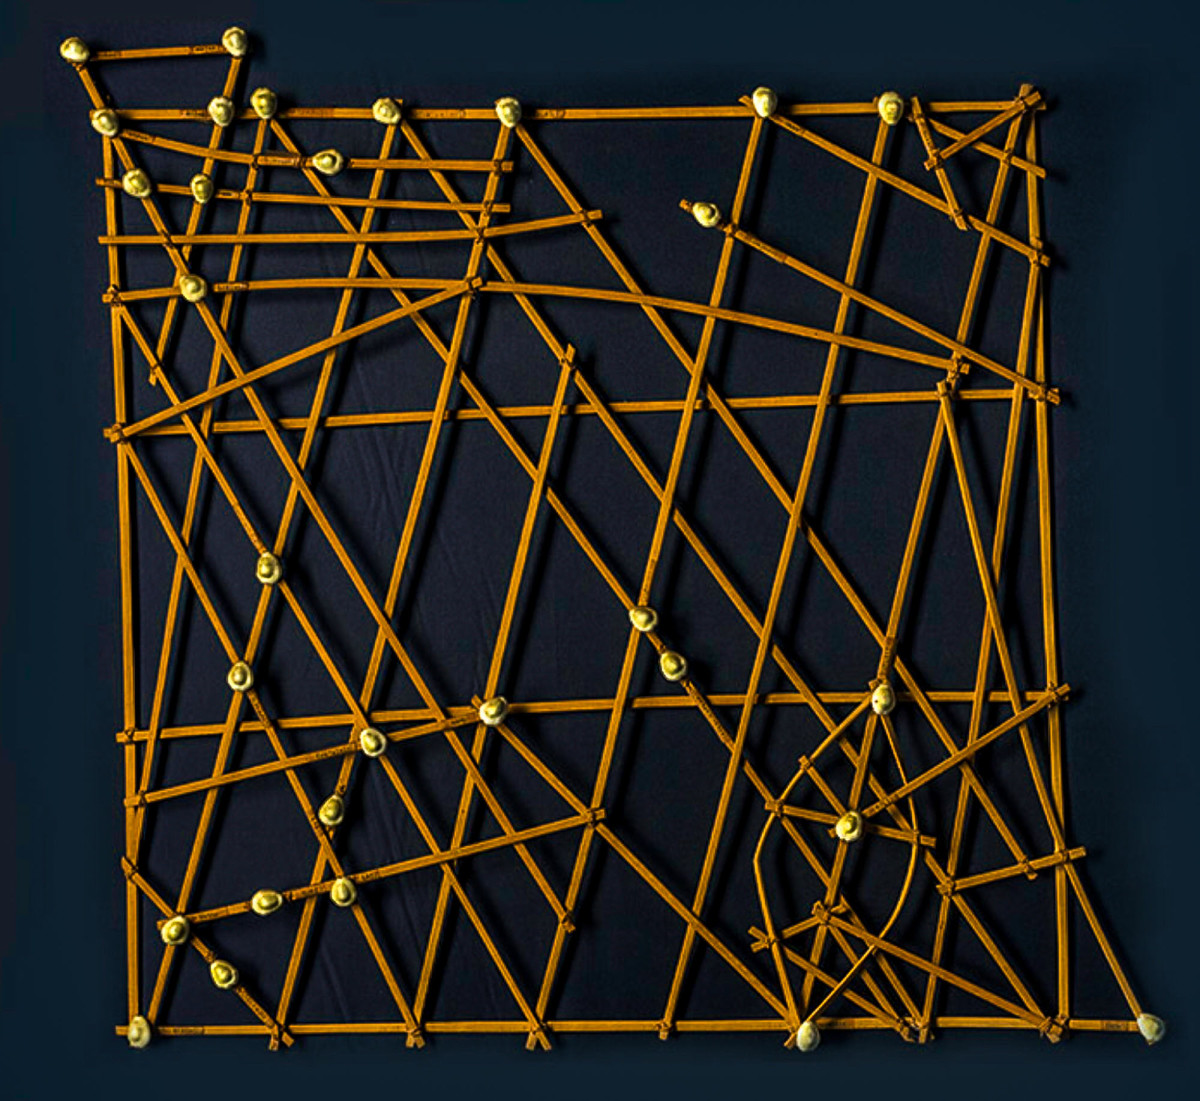 All it took was a series of sticks lashed together with twine to teach the sailors of the Marshall Islands how to navigate to unseen lands.